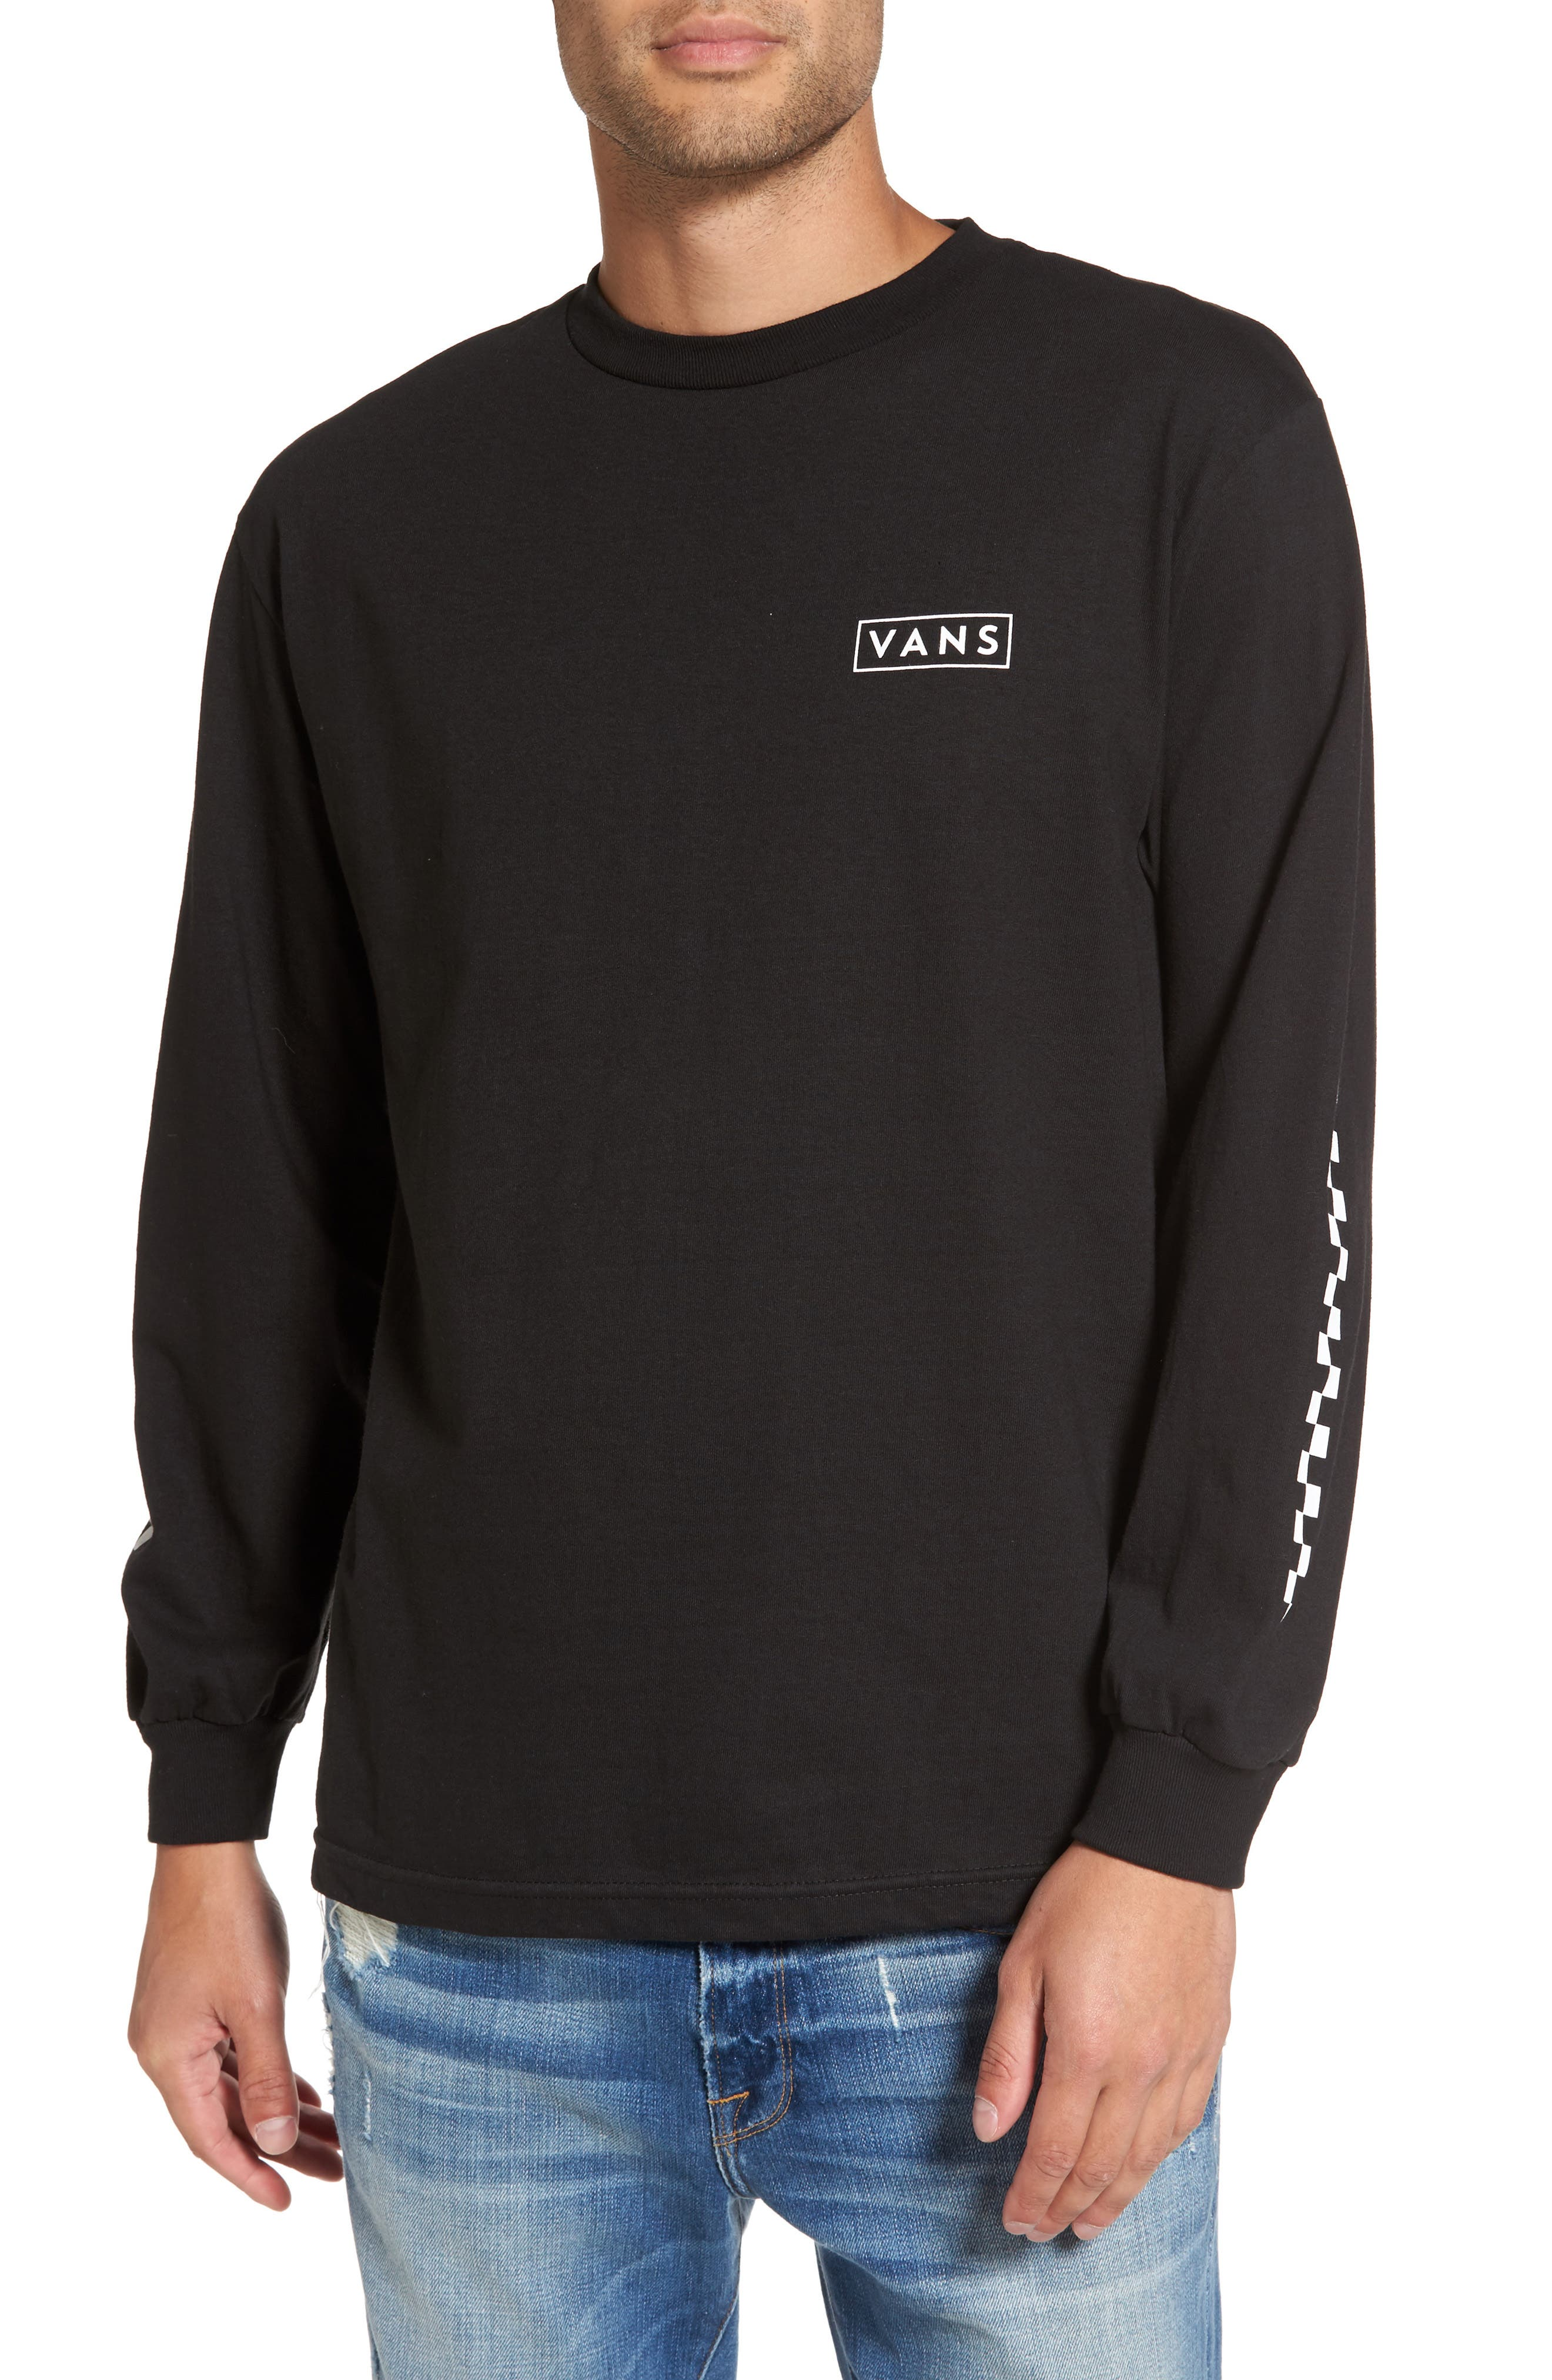 Alternate Image 1 Selected - Vans Checkmate Long Sleeve Graphic T-Shirt